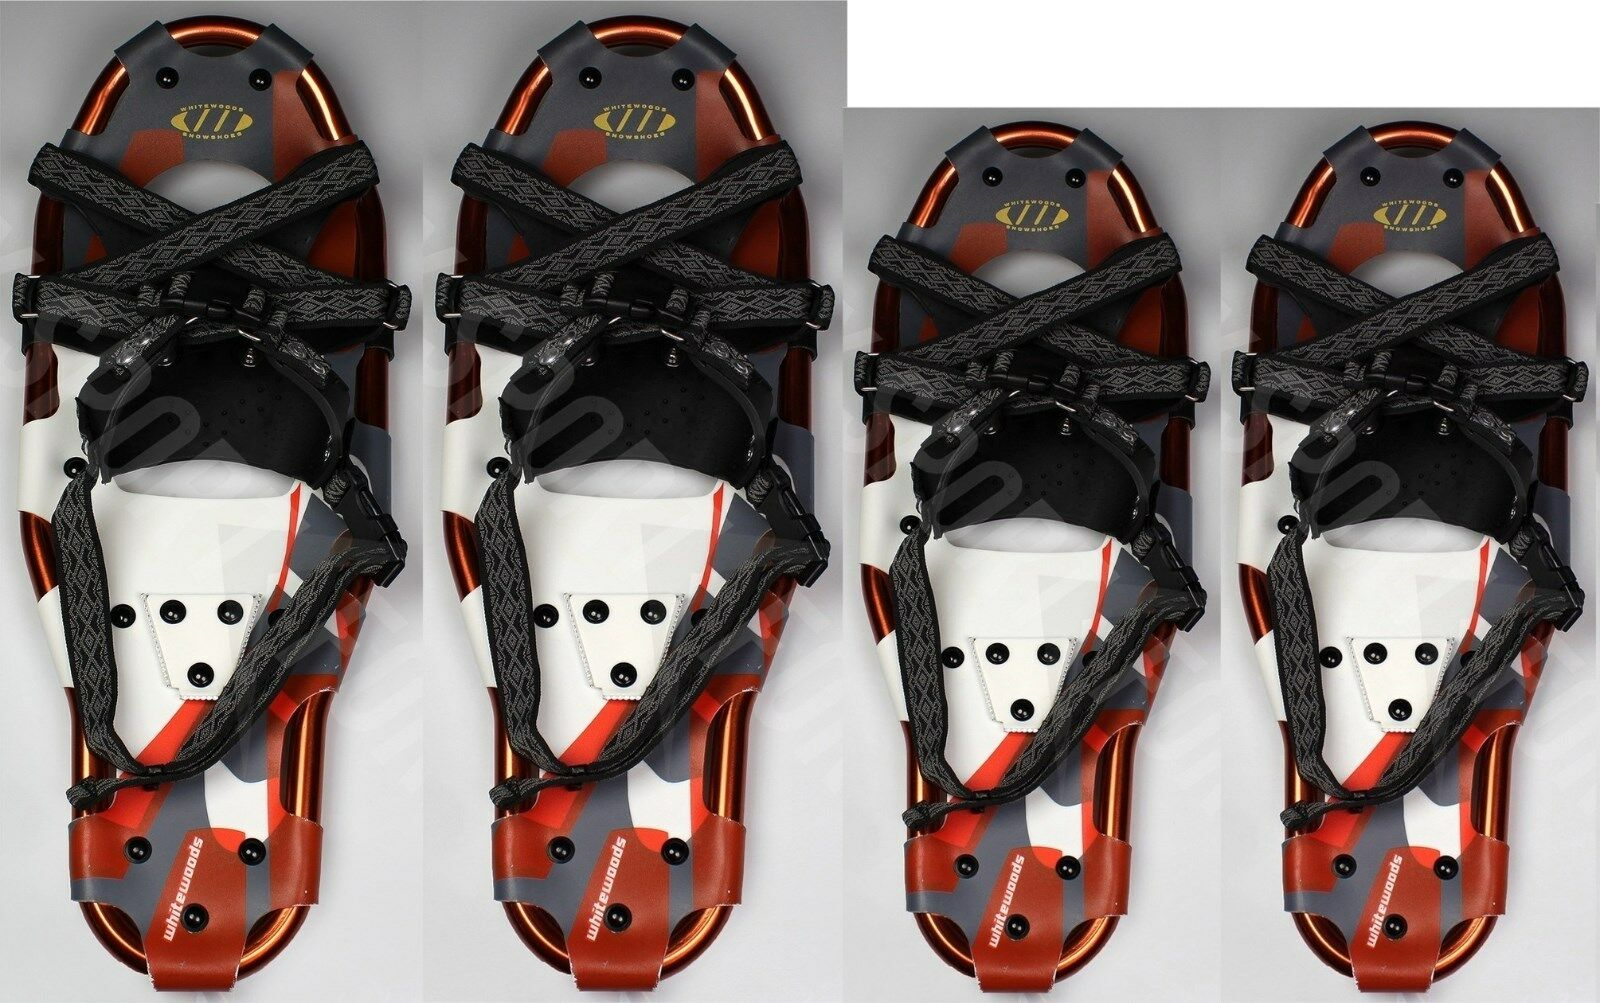 2  Pairs- NEW WHITEWOODS XLT 27 8.5x27  & XLT 22 8.5x22  SNOWSHOES - Free Mask   stadium giveaways